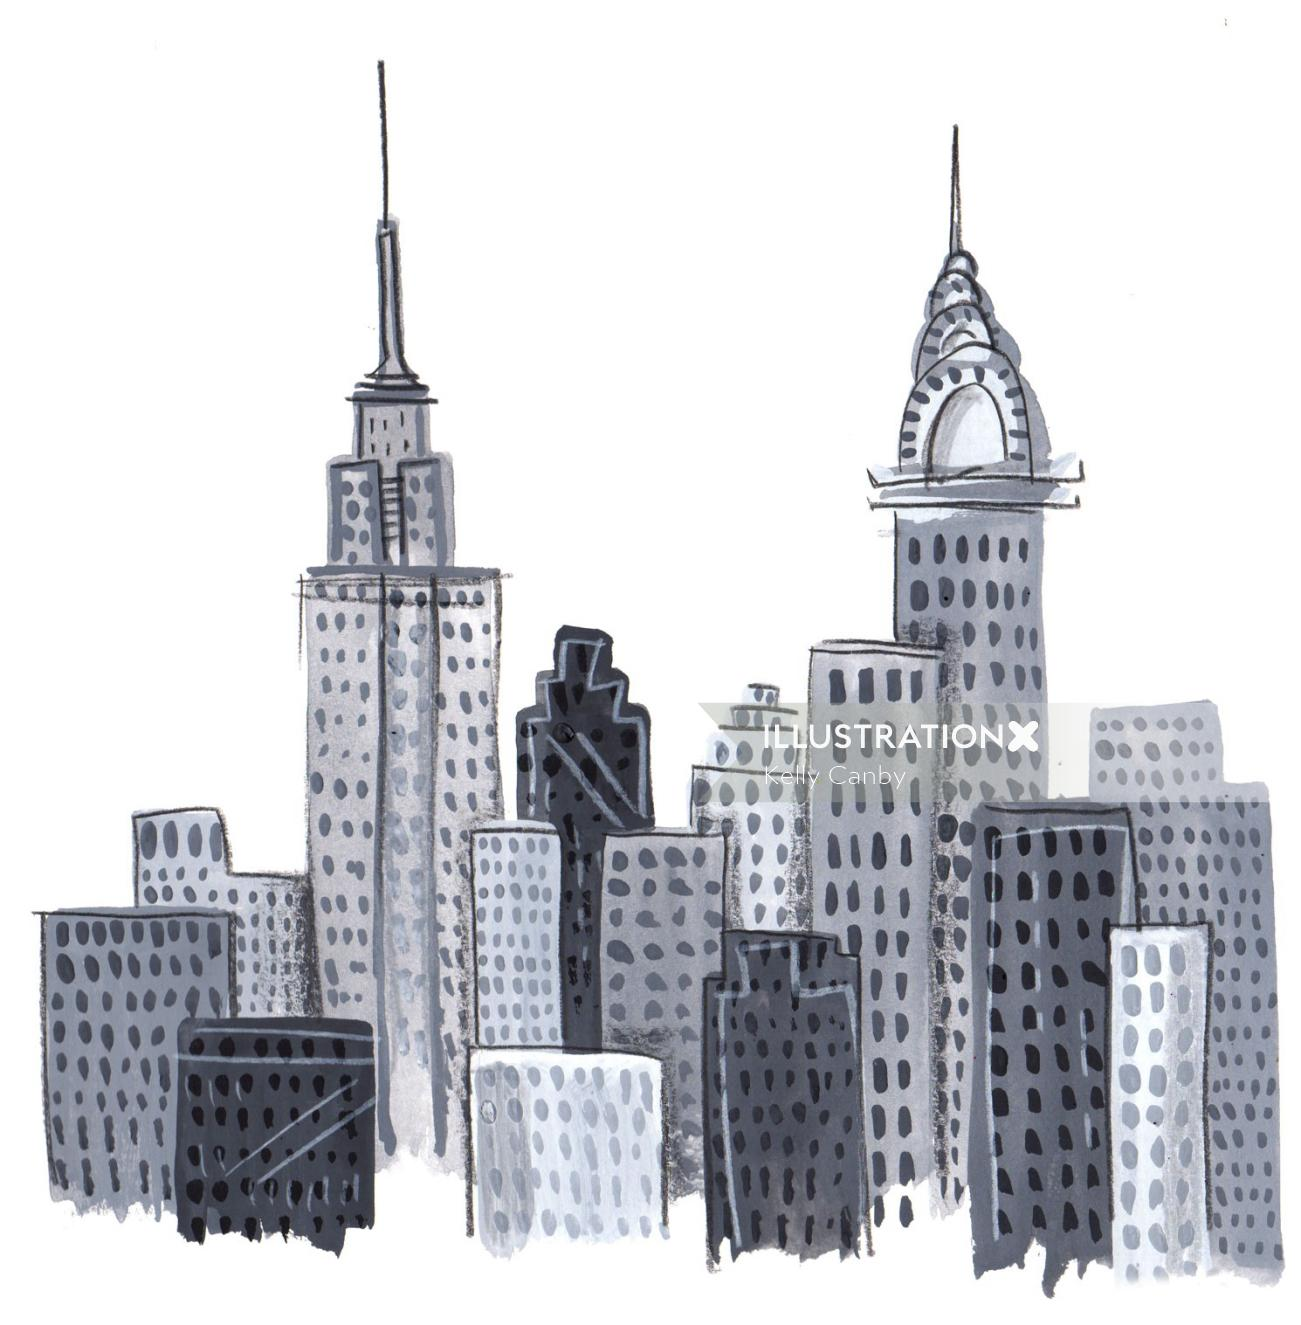 Black and white illustration of Buildings